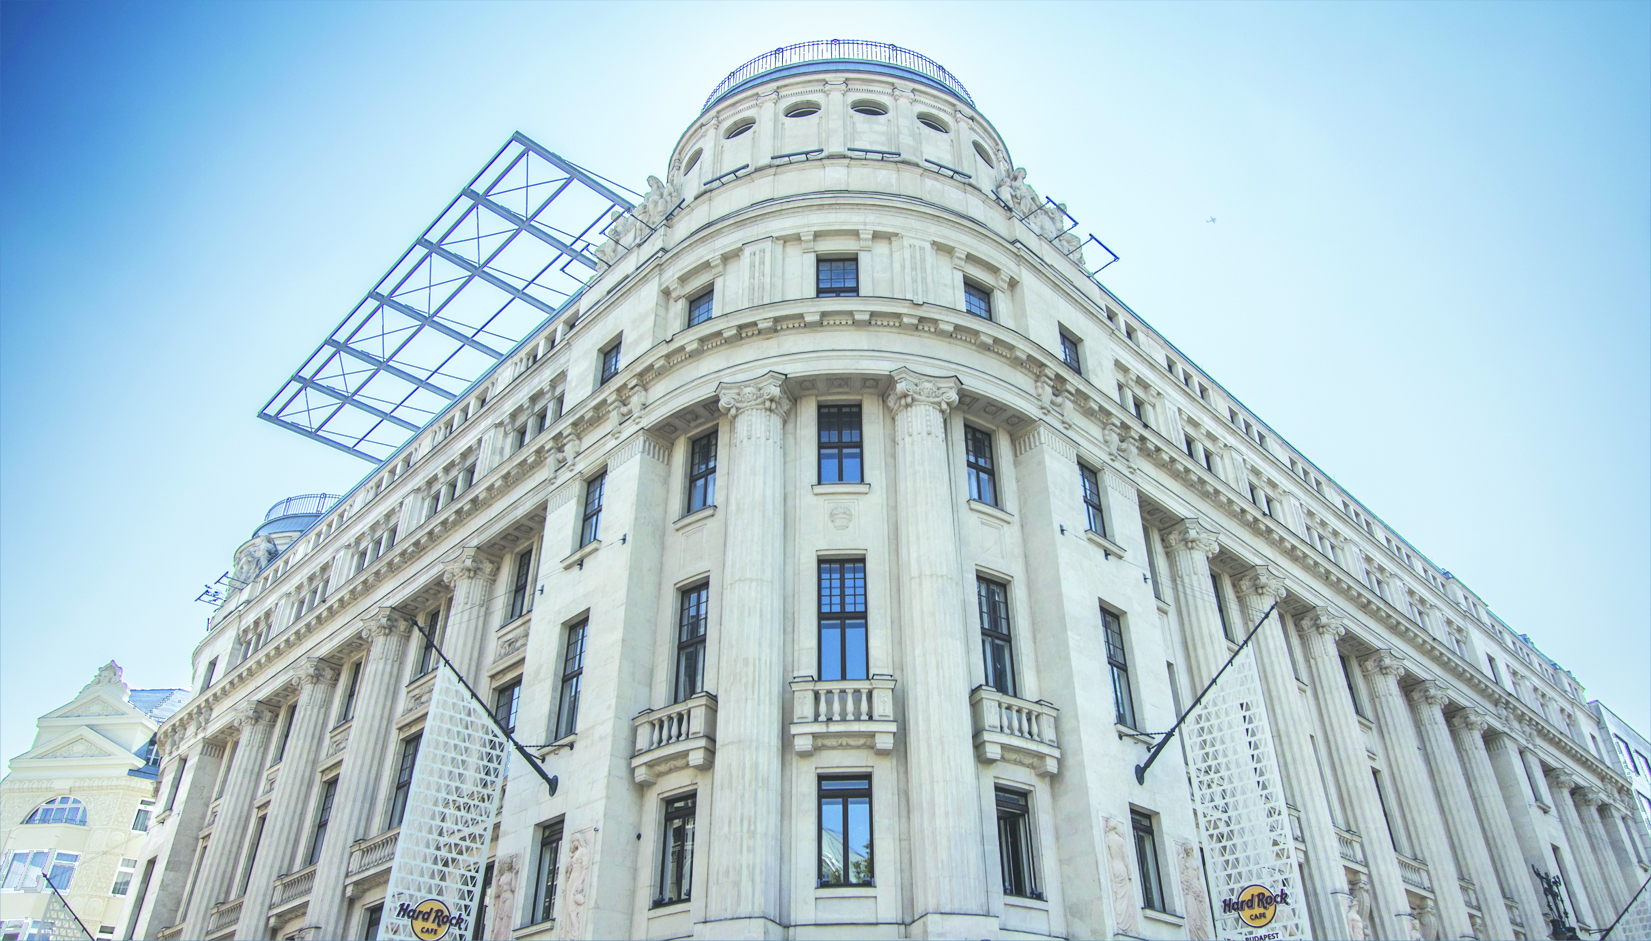 3._building_exterior_from_vorosmarty_square_vaci1_budapest_hungary